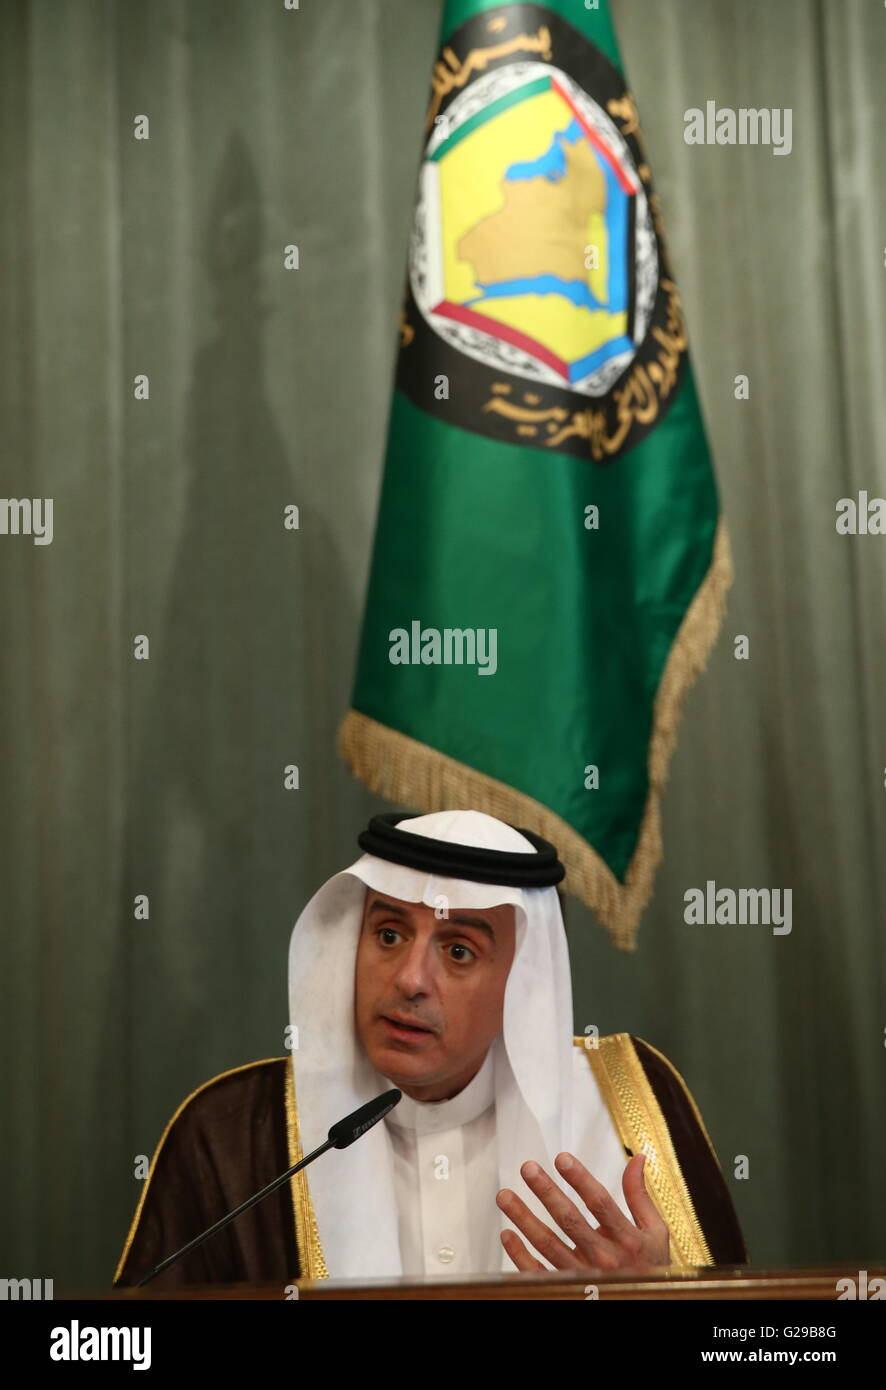 Moscow, Russia. 26th May, 2016. Saudi Arabia's Foreign Minister Adel bin Ahmed Al-Jubeir speaks during a press - Stock Image